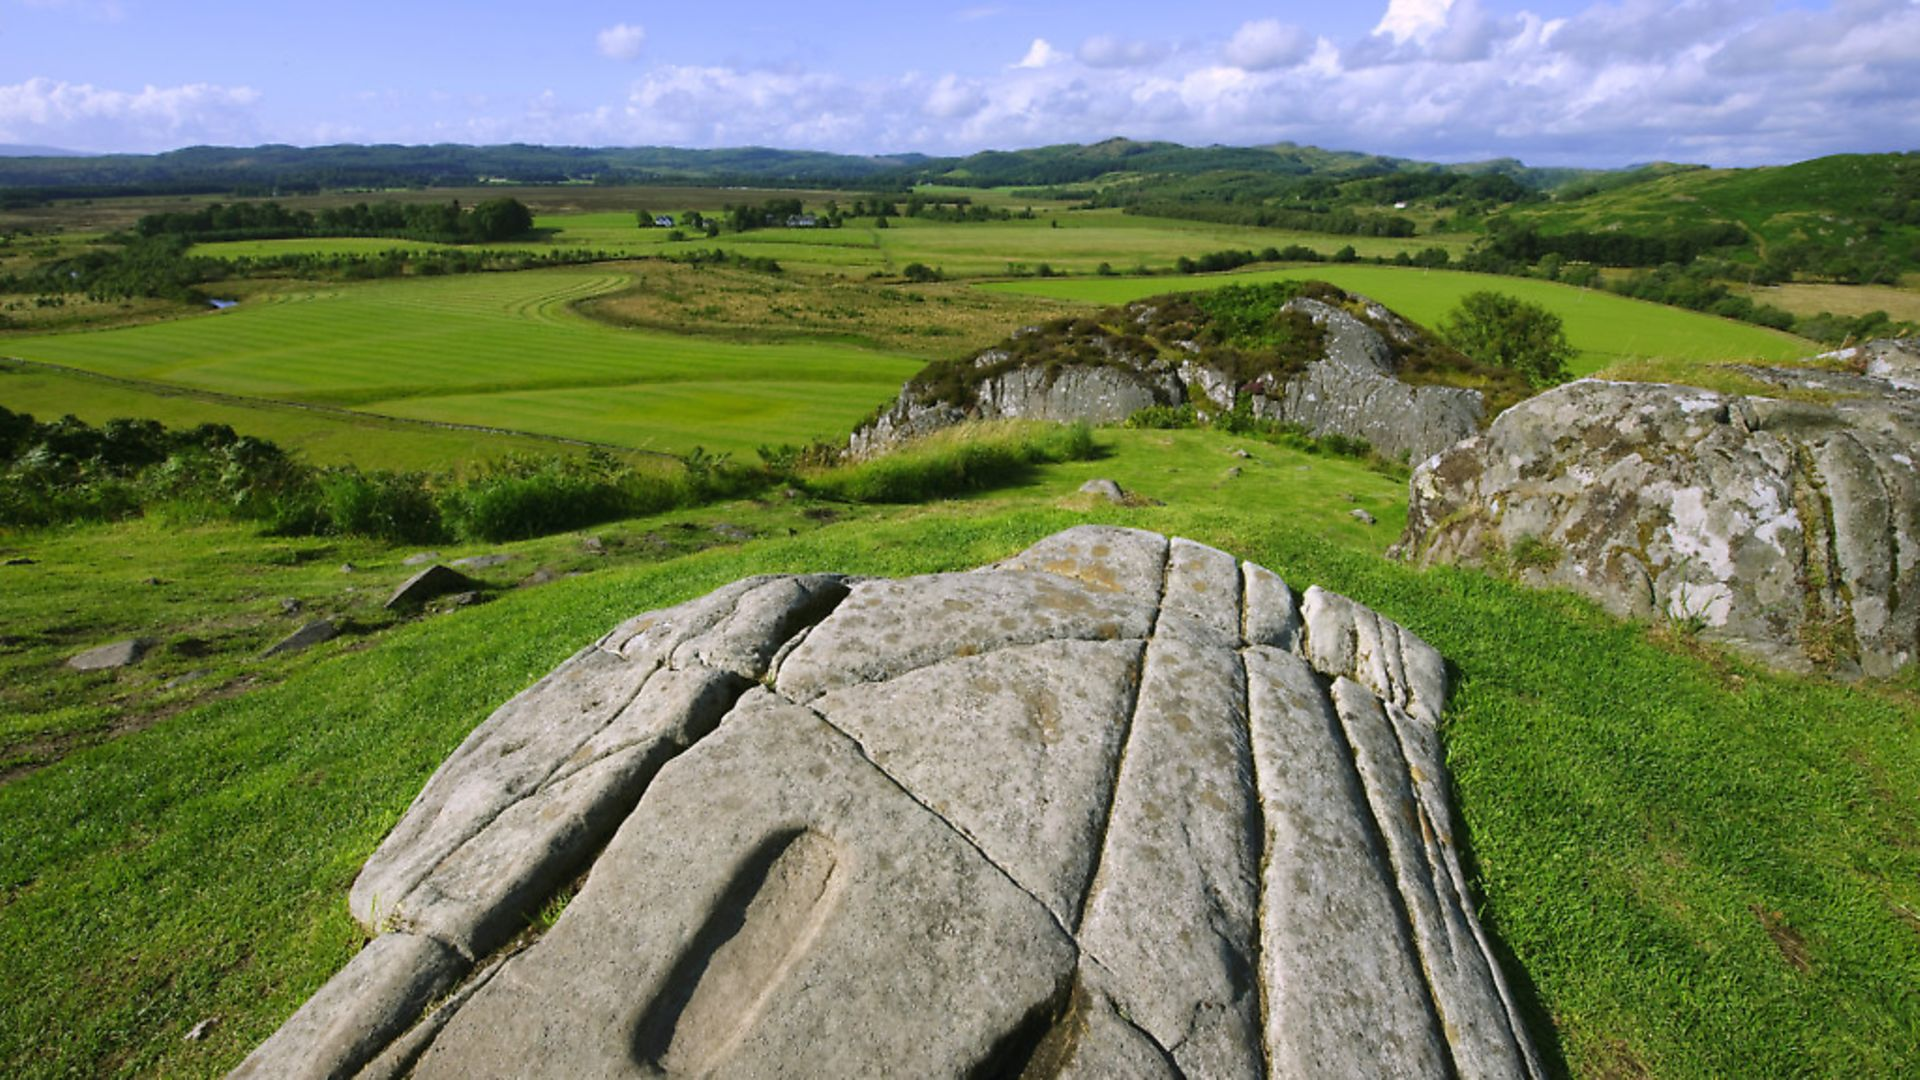 Dunadd Hill Fort, the original crowning place of the Kings of Scotland, Lochgilphead, Argyll, Scotland, United Kingdom. (Photo by: Universal Images Group via Getty Images) - Credit: Universal Images Group via Getty